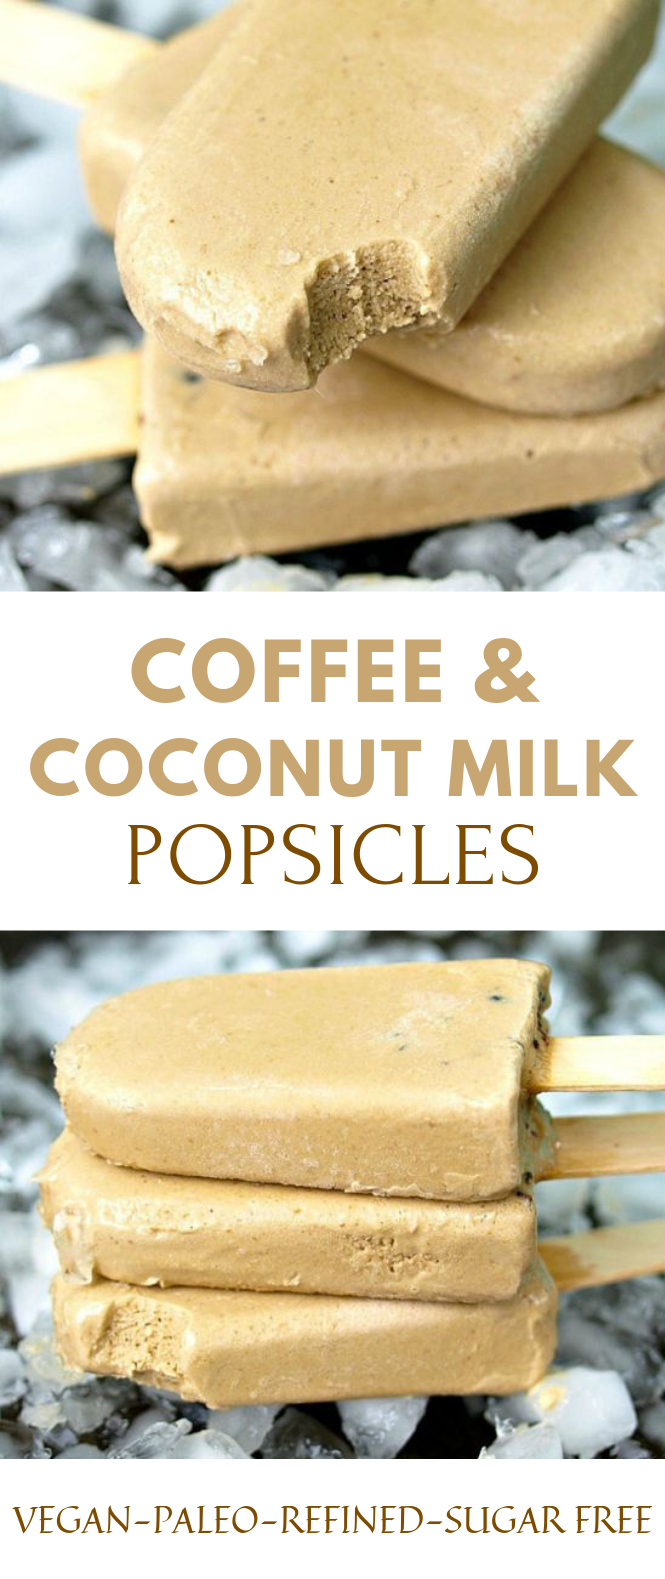 COFFEE AND COCONUT MILK POPSICLES #Dessert #HealthyDessert